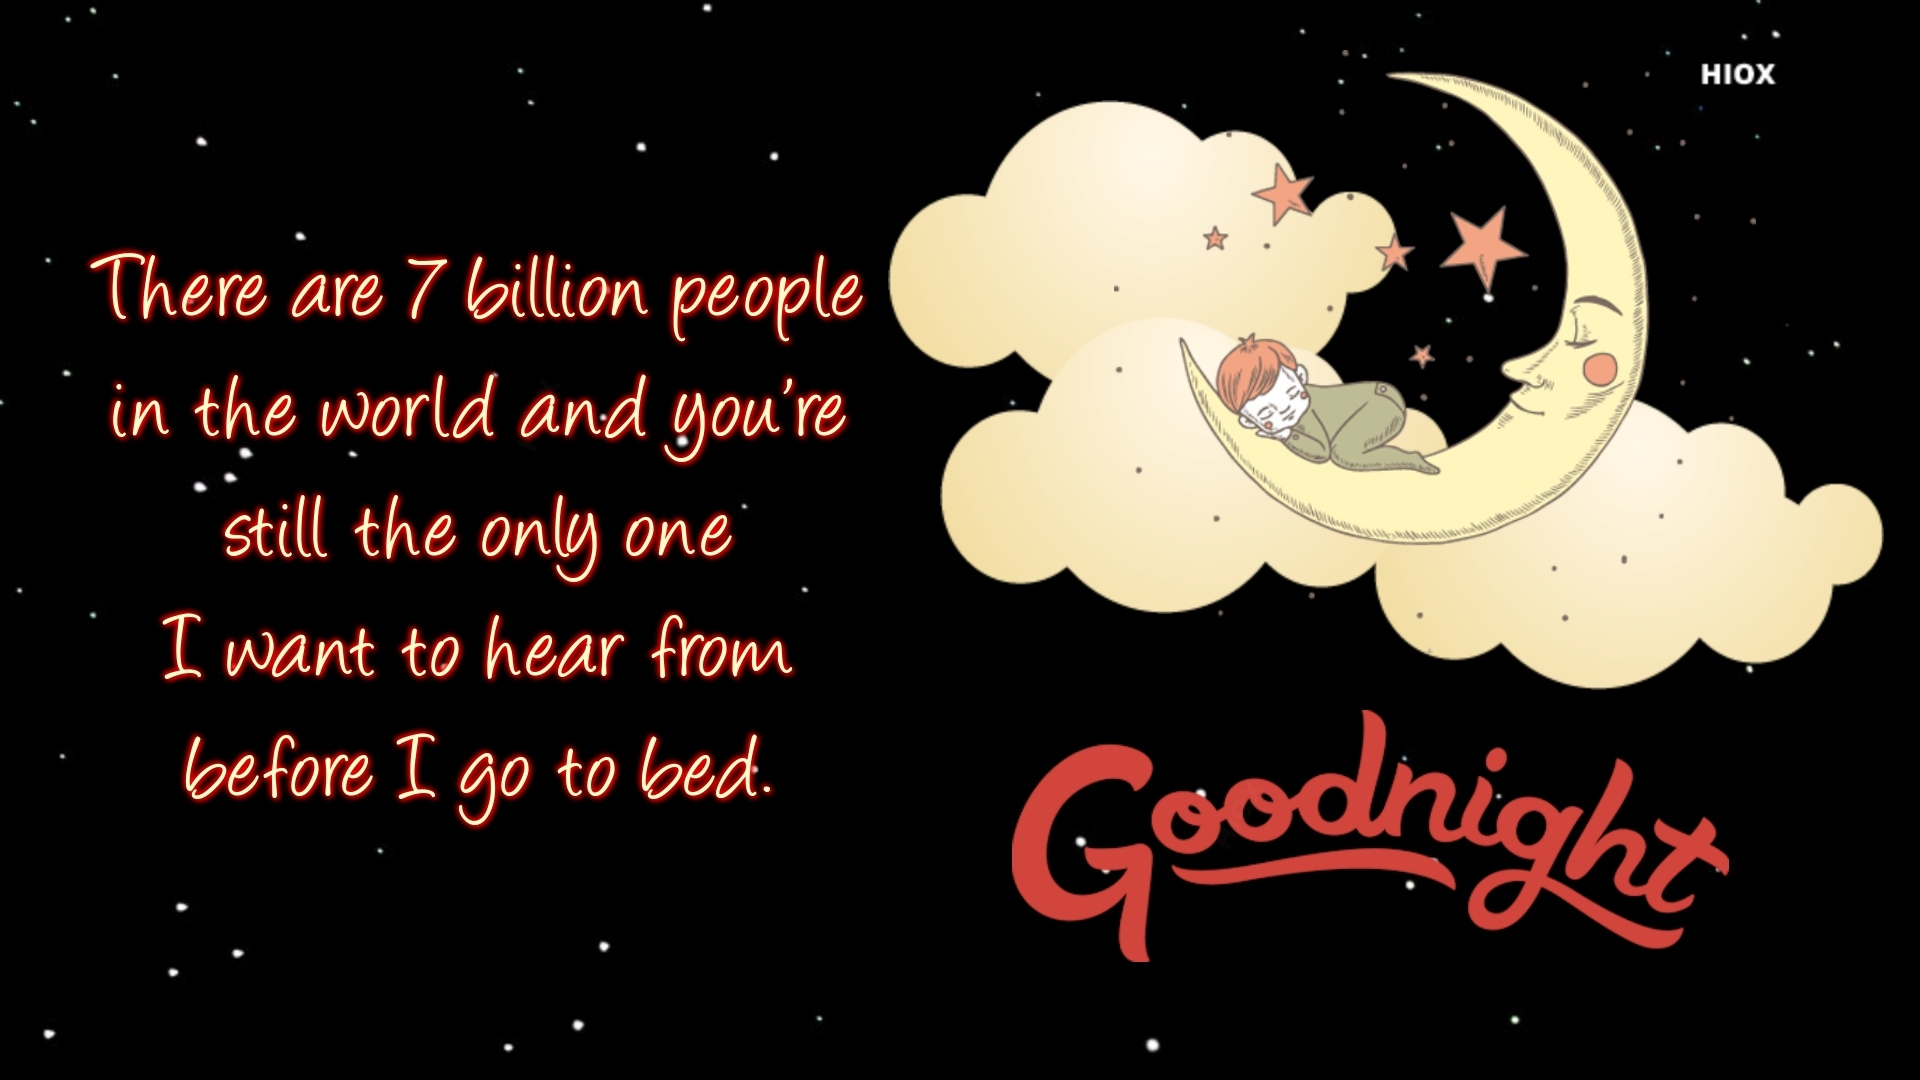 Hearty Good Night Wishes